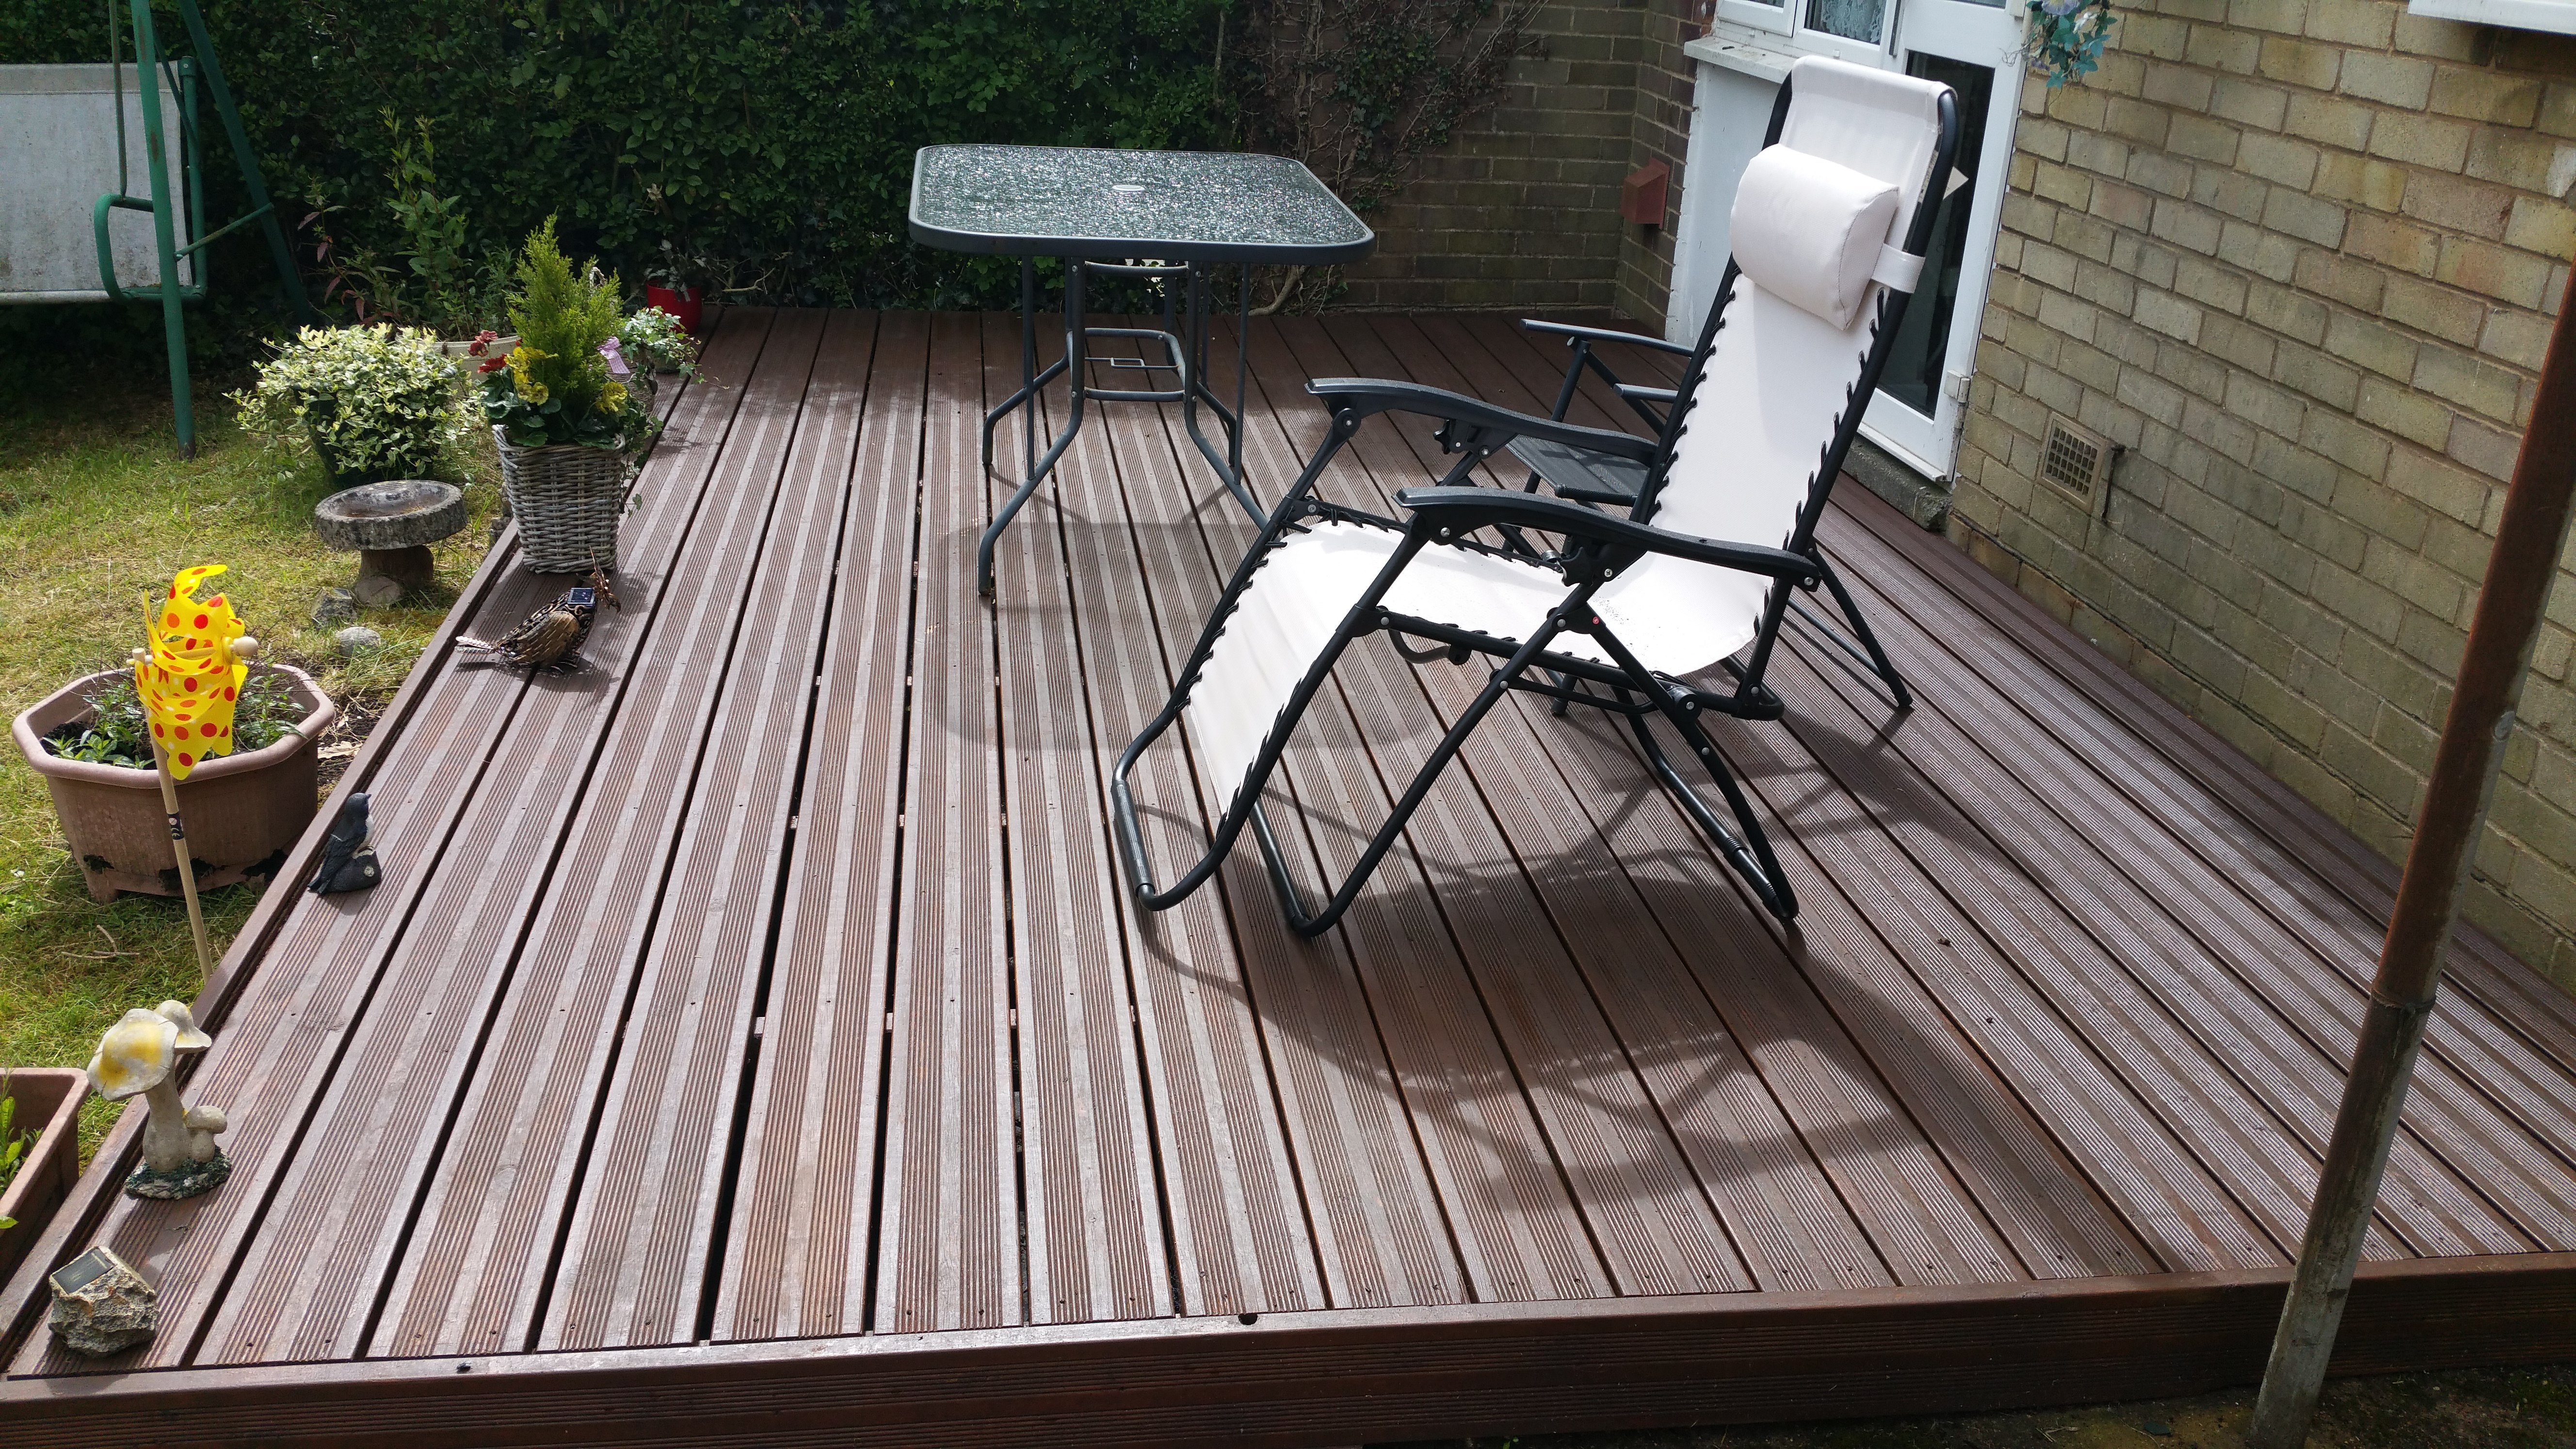 Gorgeous Handyman Wgc  About Us  Property Maintenance In Herts With Excellent Old Decking Boards Re Stained To Look Like A Brand New Decking Platform  Again With Astonishing Garden Chairs And Tables Also Sims  Gardening Skill In Addition Electric Garden Saw And How To Start Herb Garden As Well As In The Night Garden Cakes Asda Additionally Things To Do In Kew Gardens From Handymanwgcuk With   Excellent Handyman Wgc  About Us  Property Maintenance In Herts With Astonishing Old Decking Boards Re Stained To Look Like A Brand New Decking Platform  Again And Gorgeous Garden Chairs And Tables Also Sims  Gardening Skill In Addition Electric Garden Saw From Handymanwgcuk